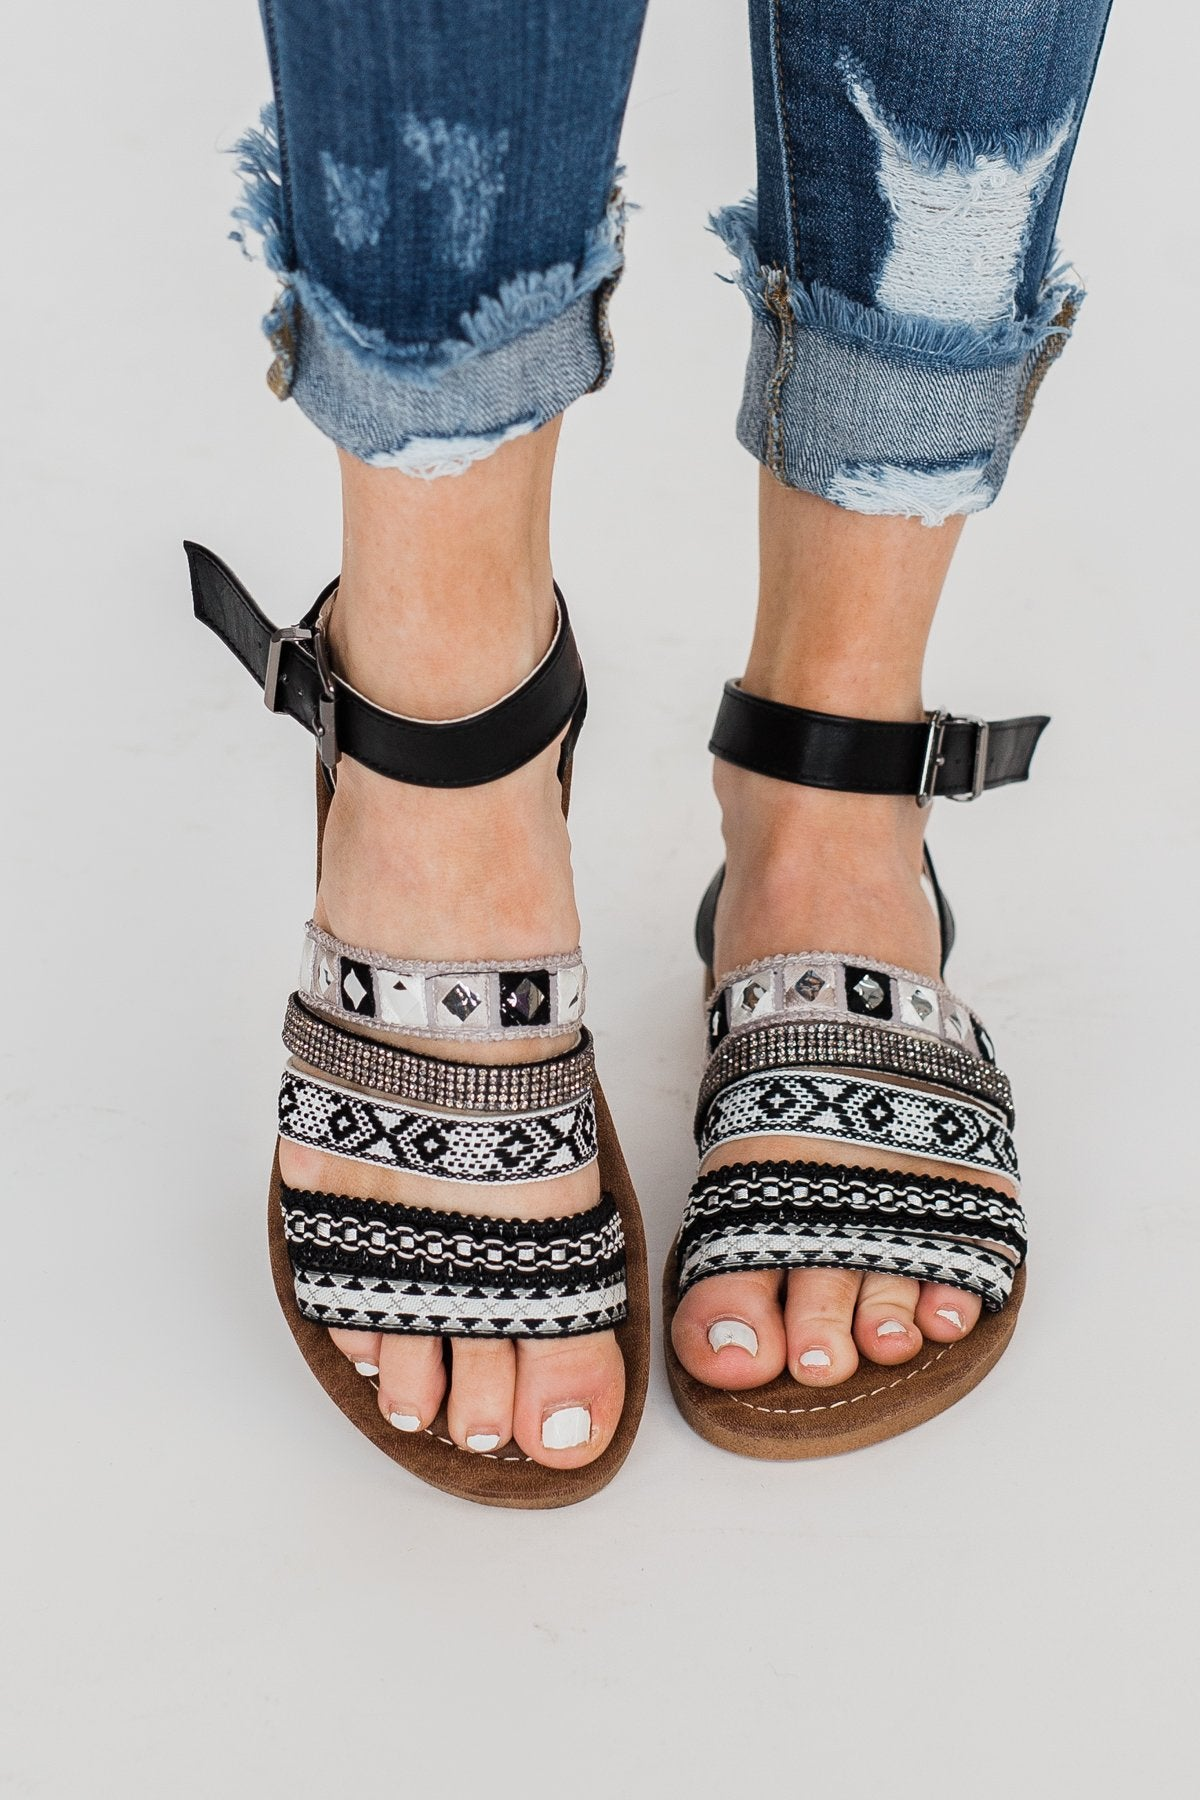 Very G Gypsy Girl Sandals- Black